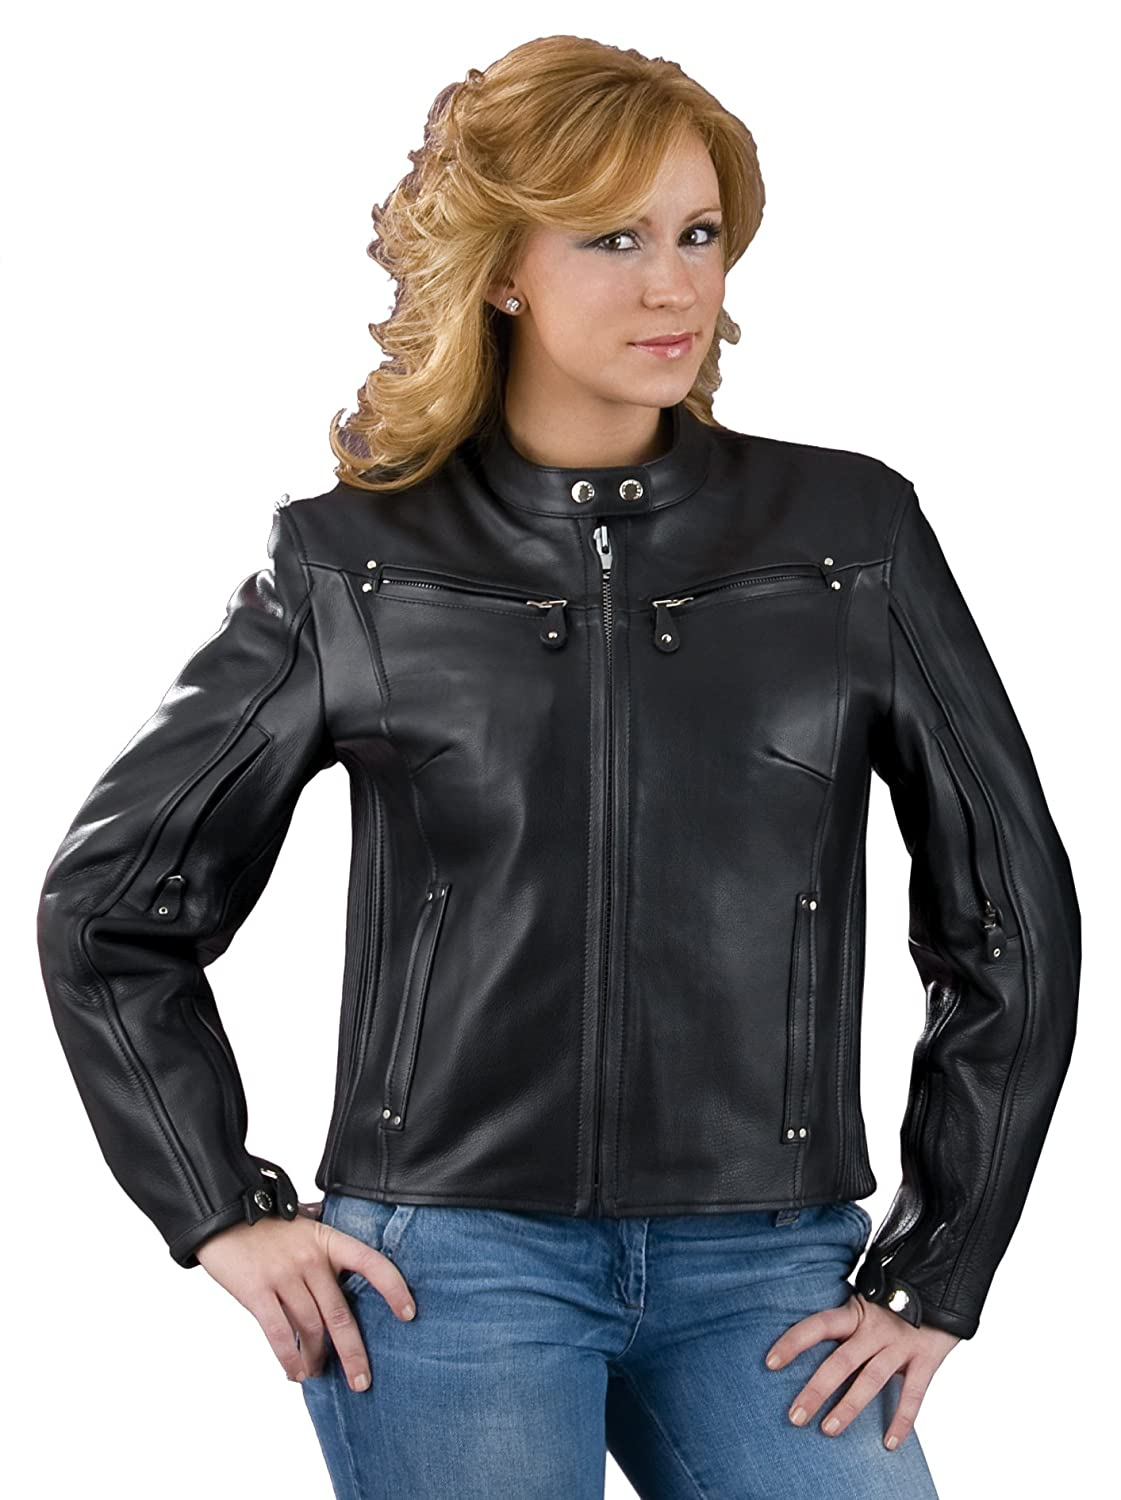 Milwaukee Leather Womens Naked American Leather Vented Scooter Jacket Black, XXX-Large ML2002-BLK-3X